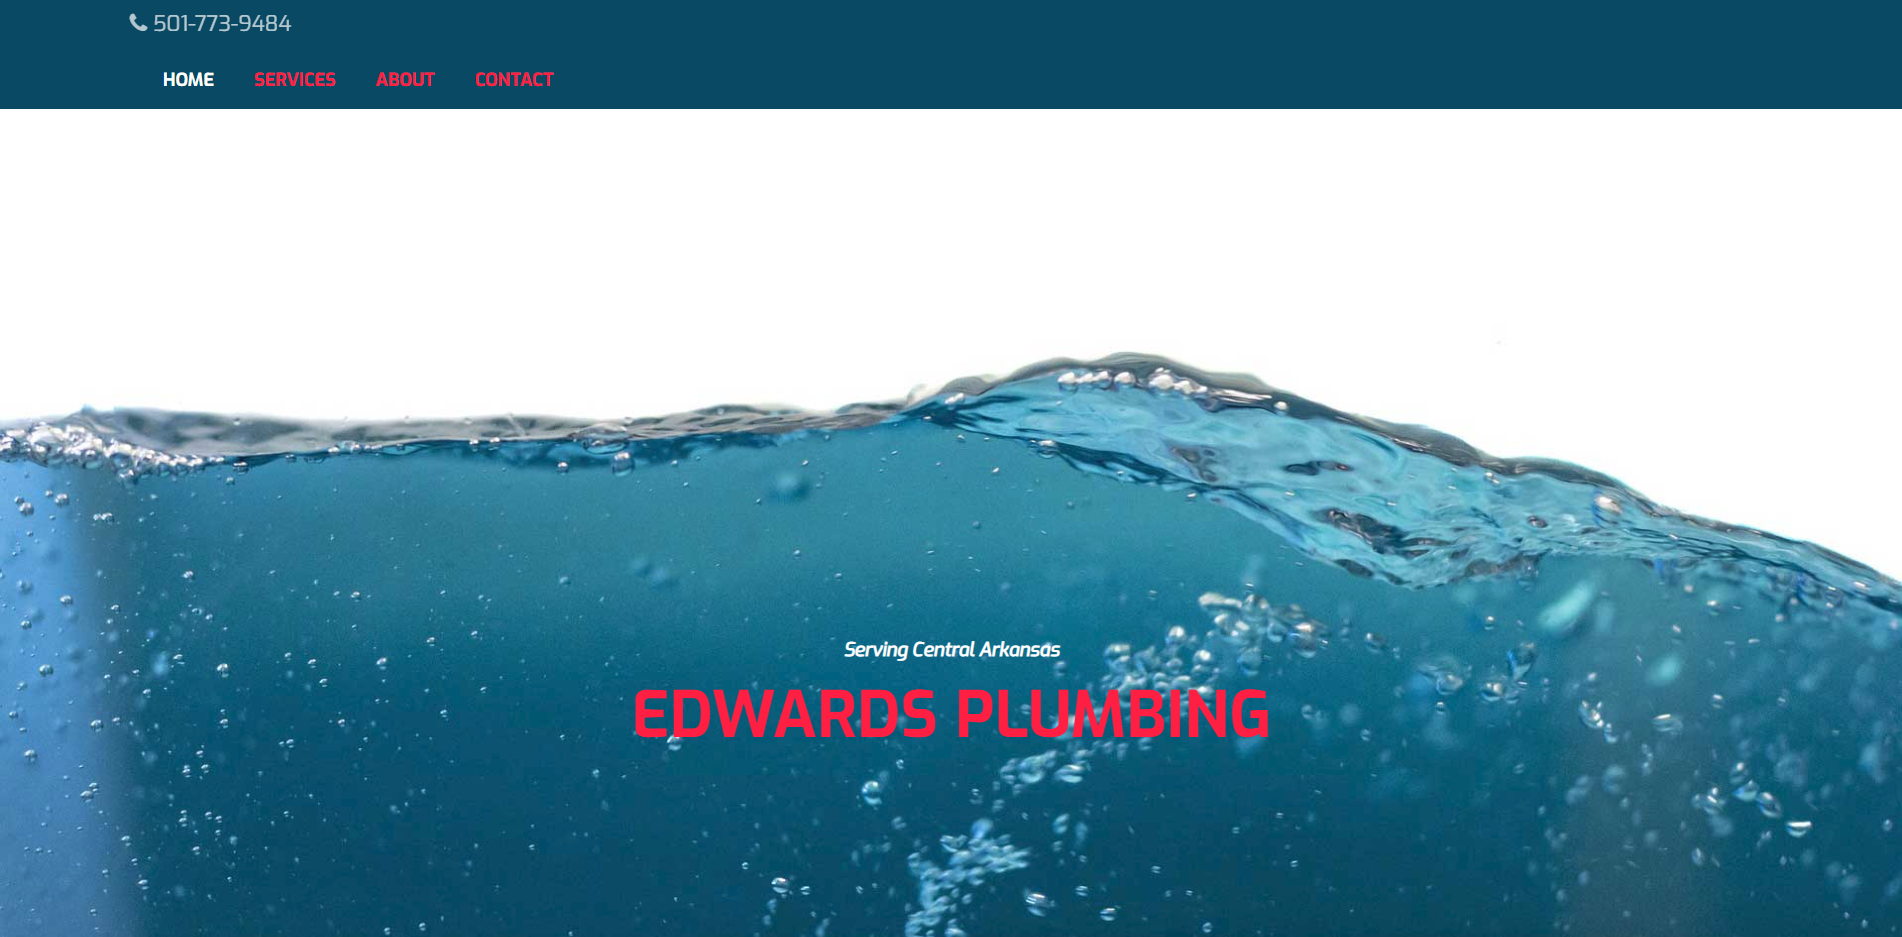 Landing page screen shot for Edwards Plumbing